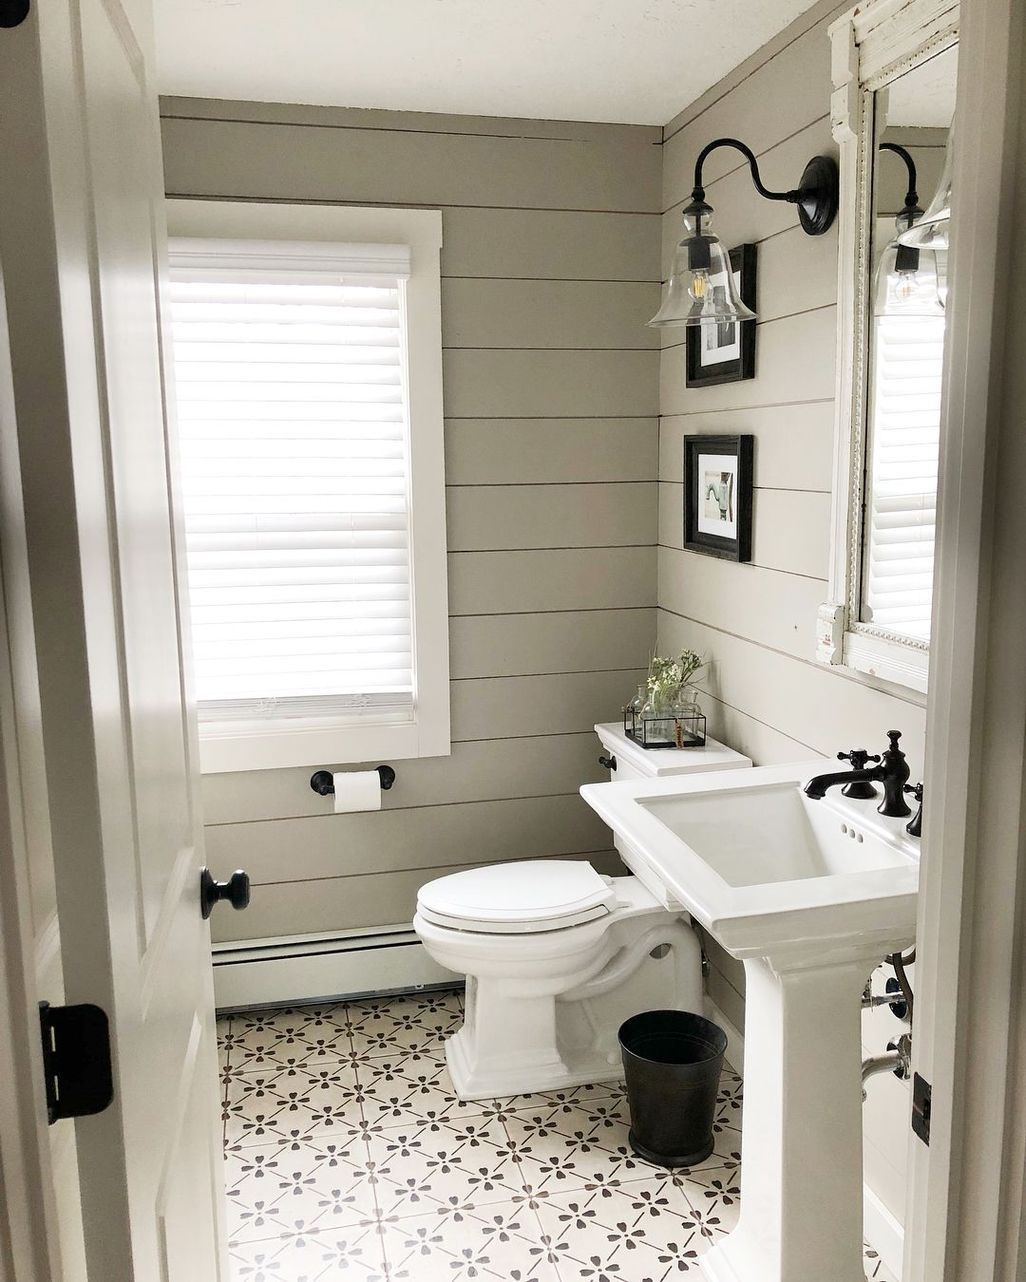 Pin By Homishome On Bathroom Design In 2019